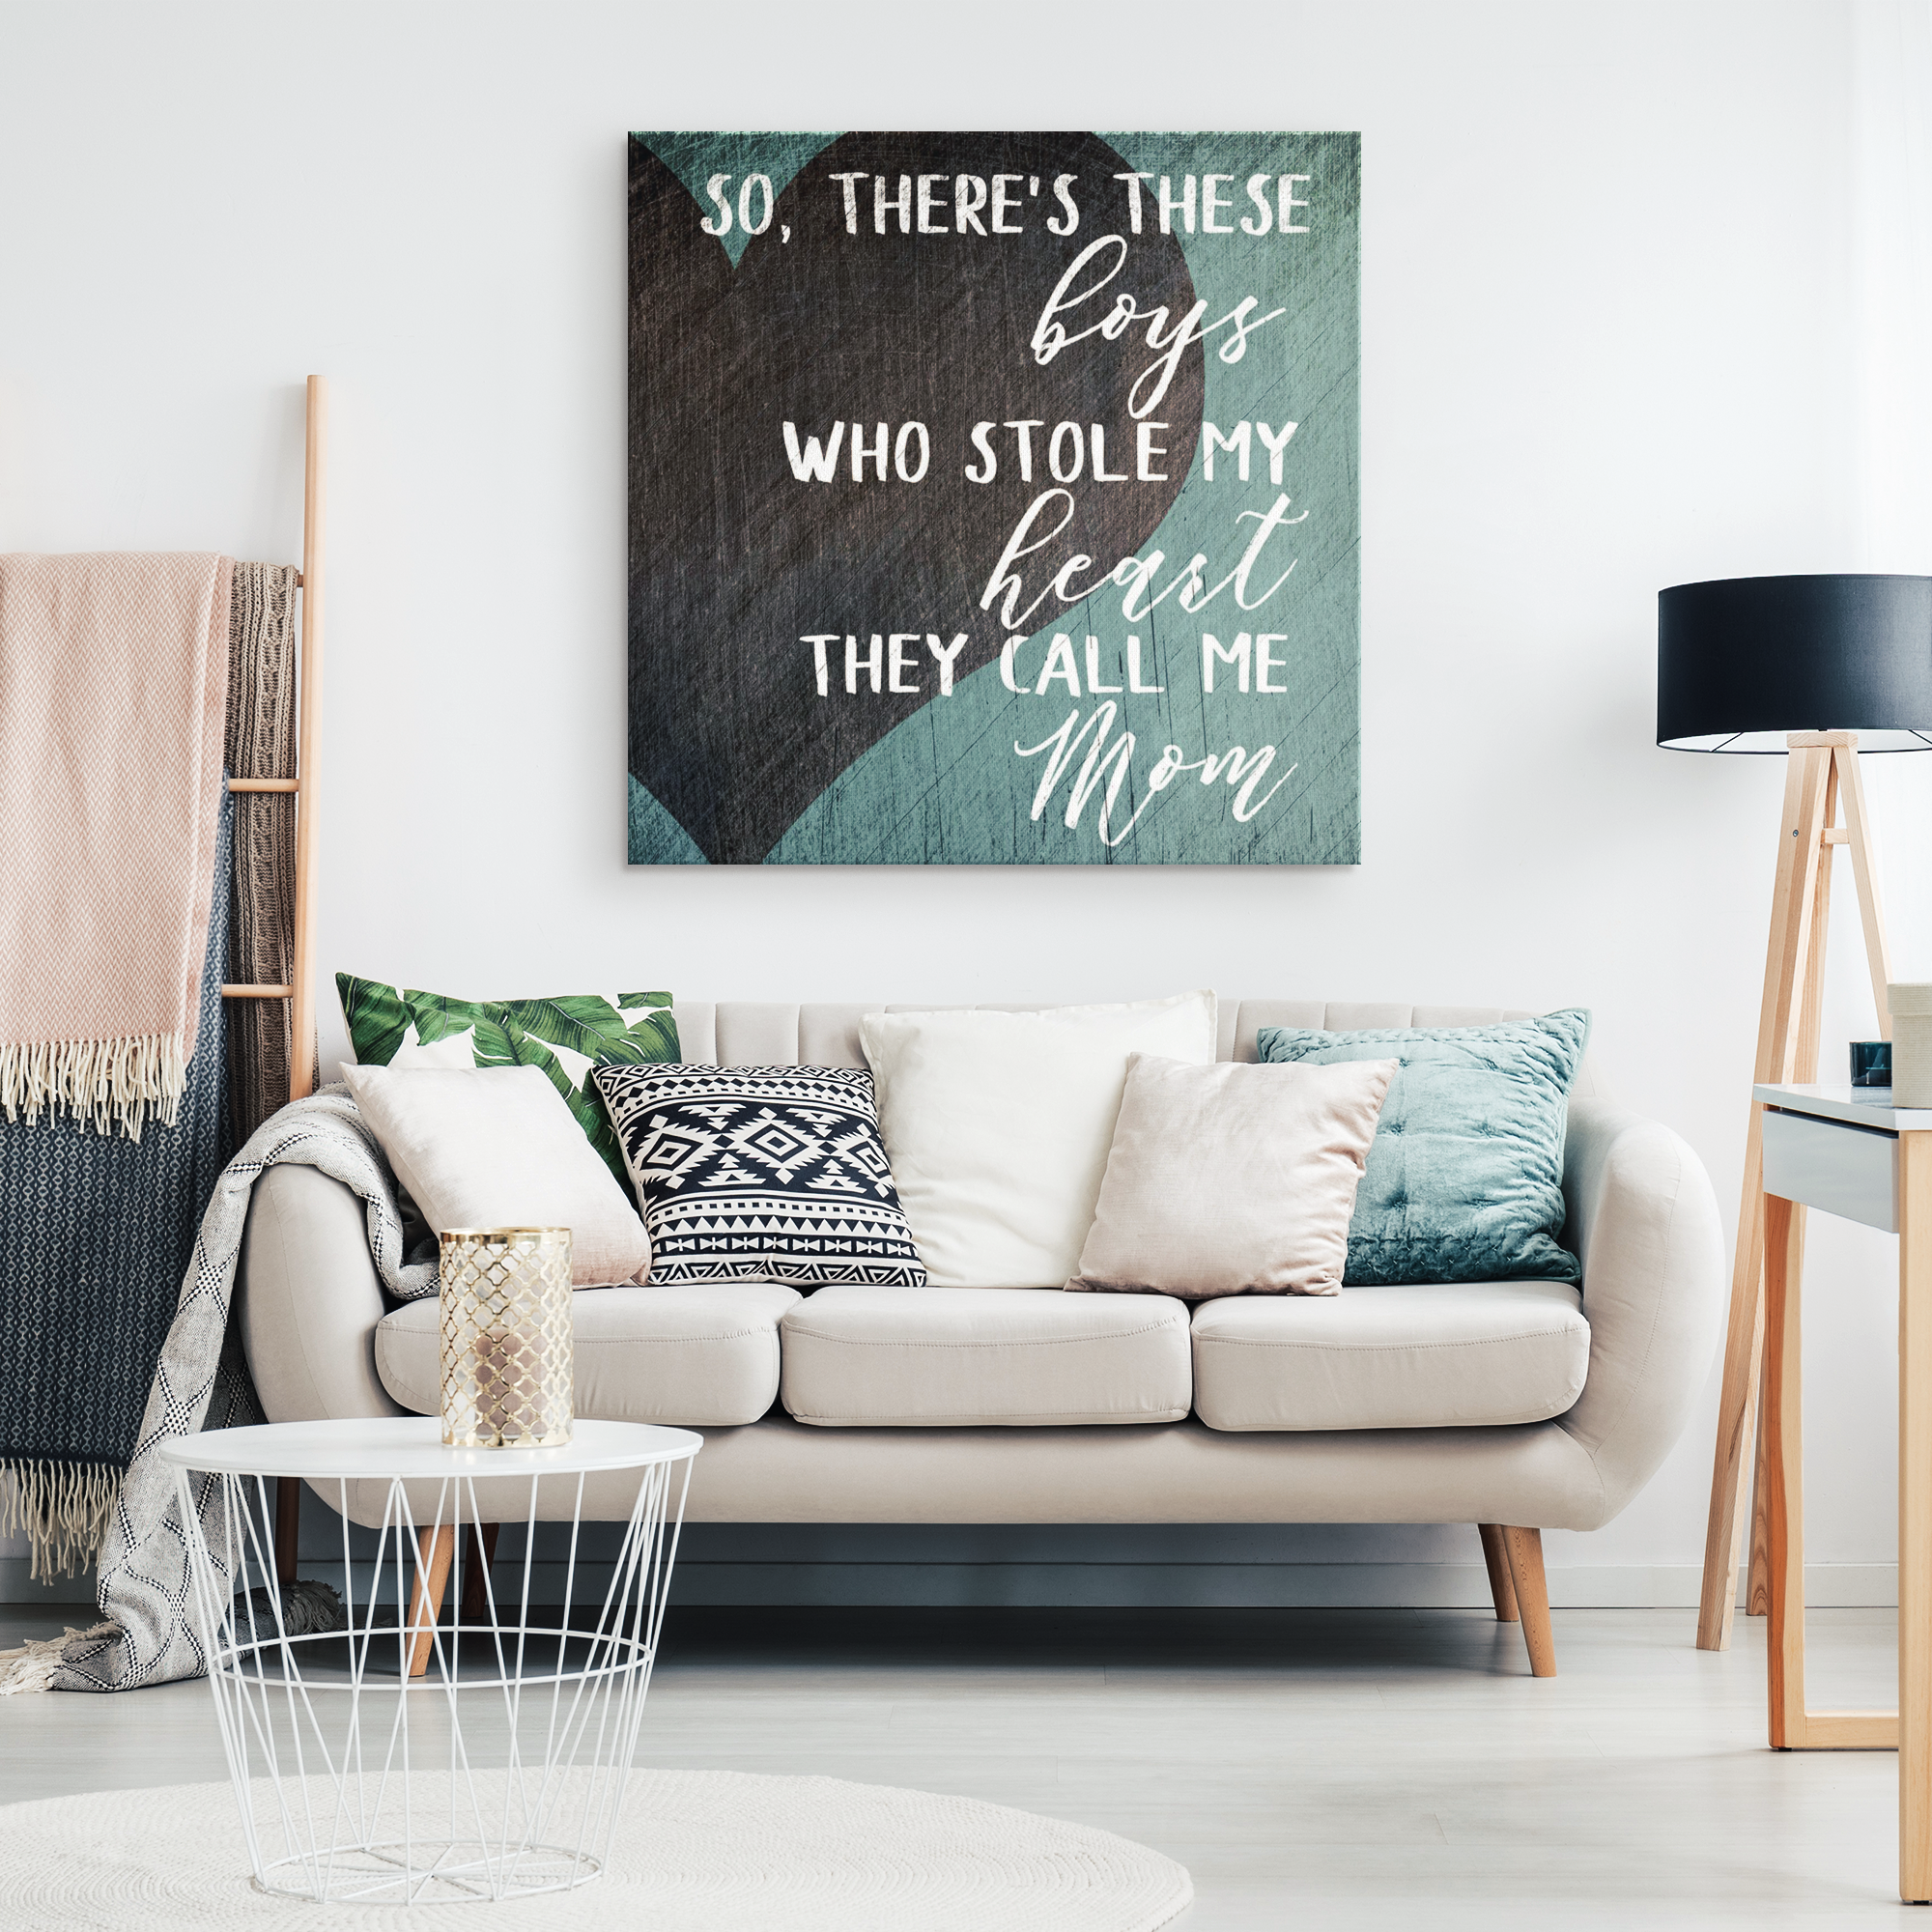 """These Boys Who Stole My Heart"" Premium Canvas"